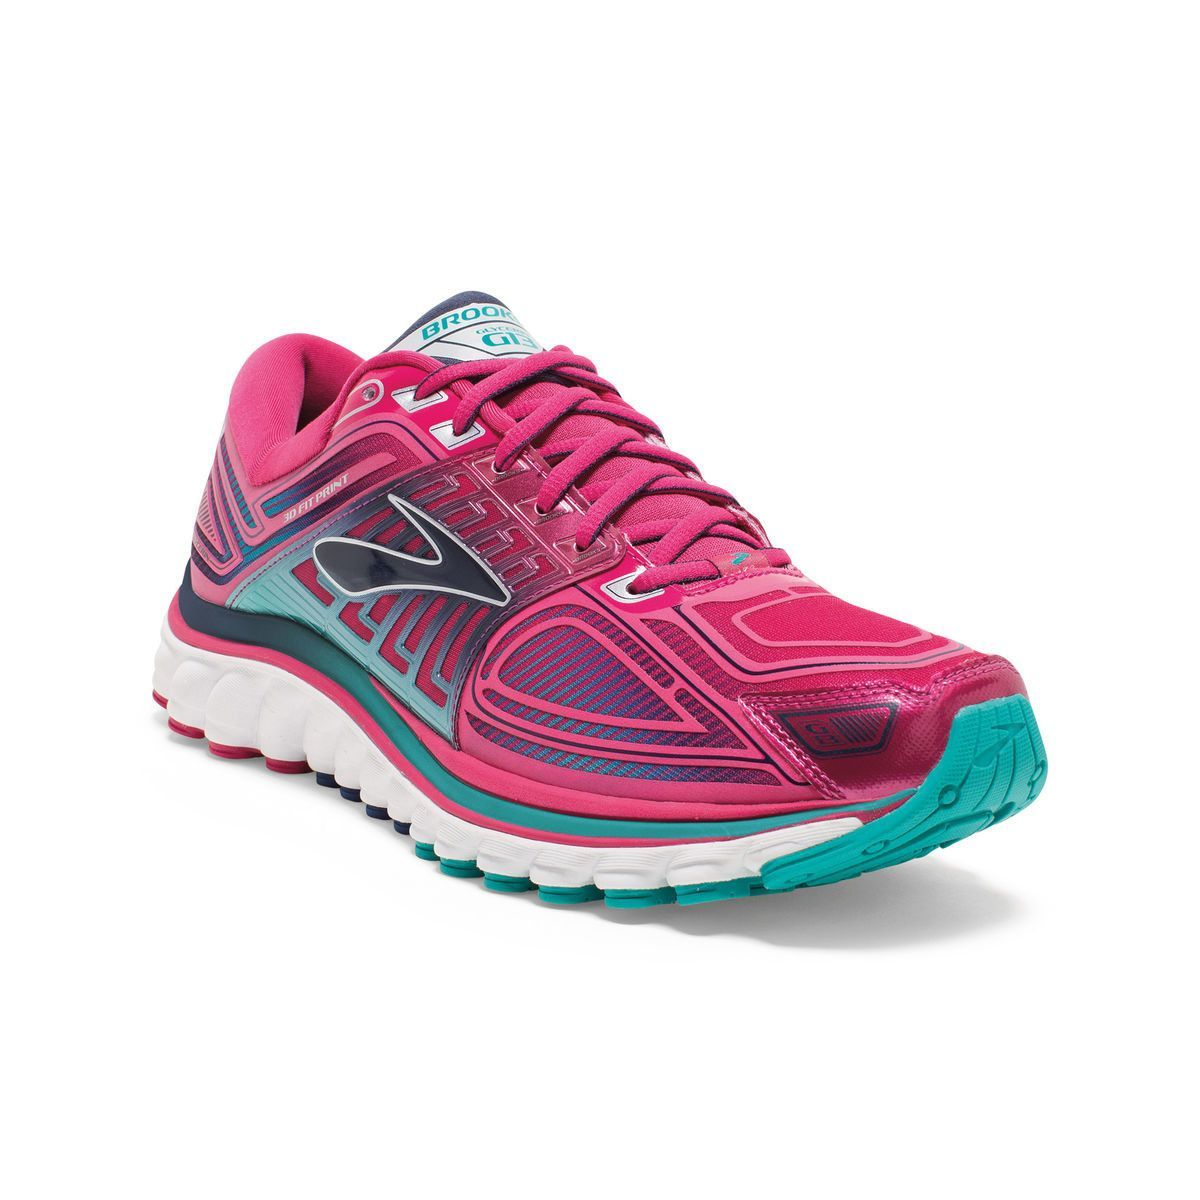 Love my BROOKS GLYCERIN 13 WOMEN S. The best running shoes I ve owned. 7f1f2eb12